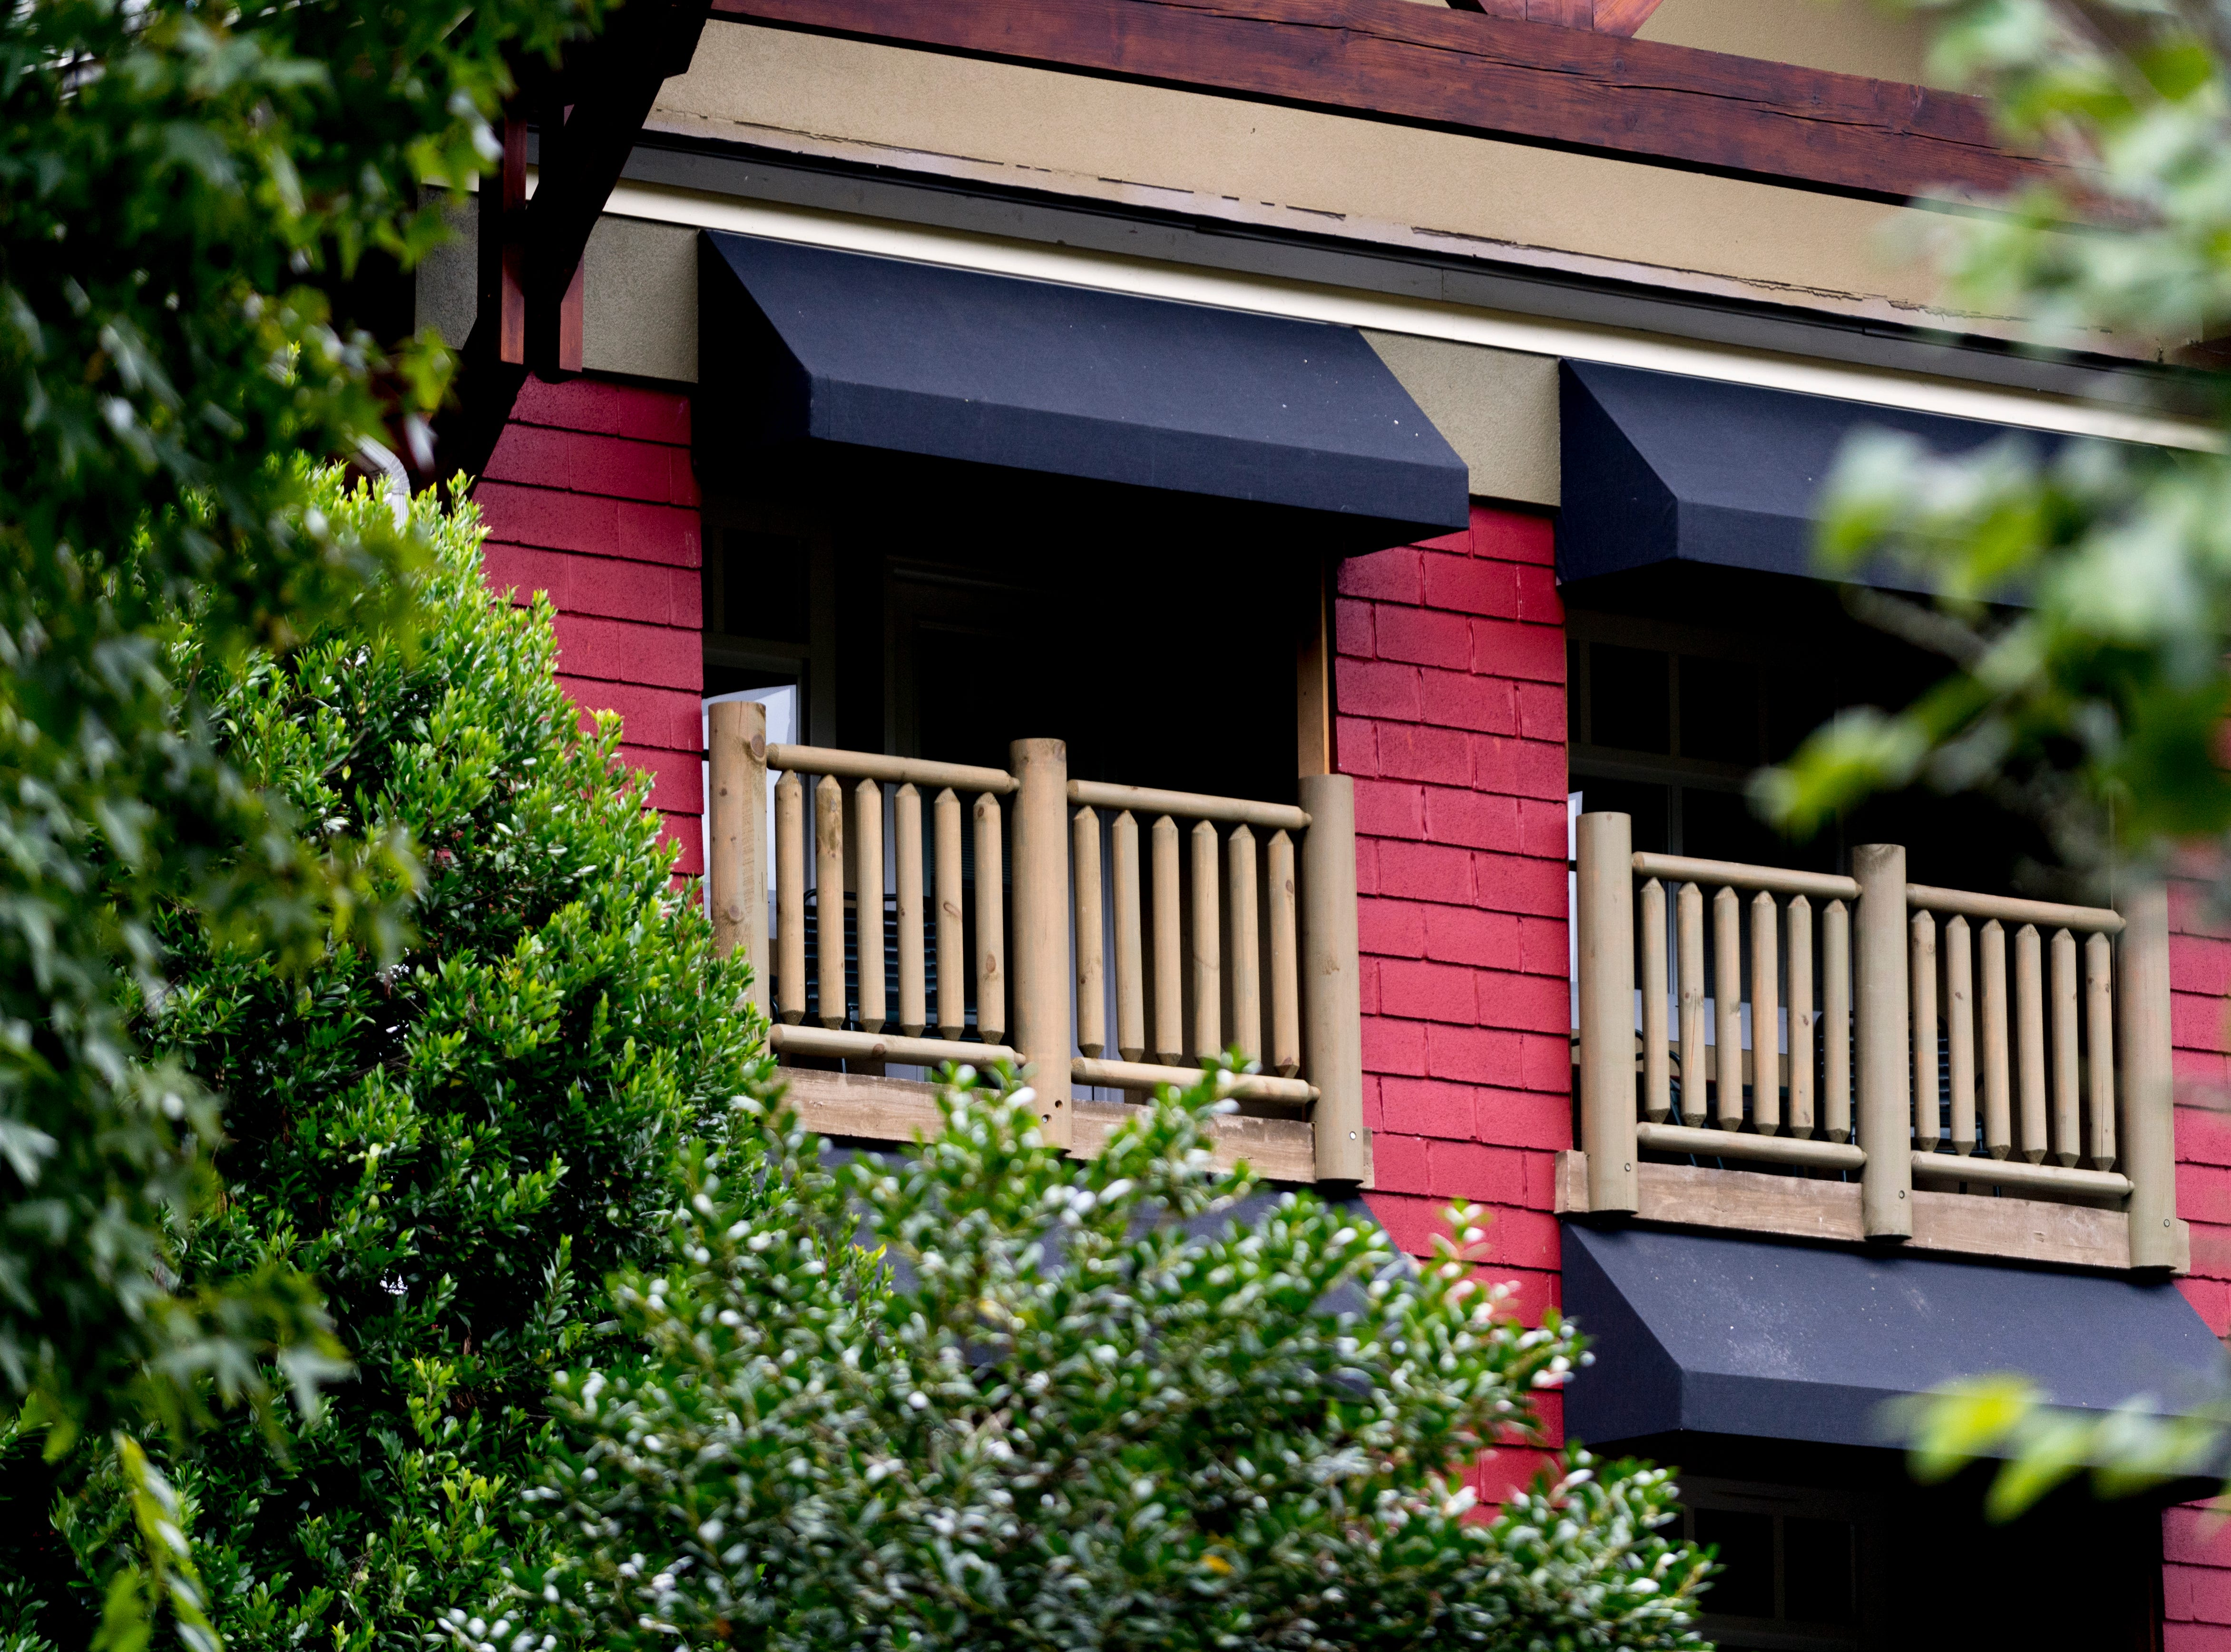 Some rooms include a balcony at The Appy Lodge in Gatlinburg, Tennessee on Tuesday, September 18, 2018. The hotel partnered with Appalachian organizations to create a Appalachian Trail theme.